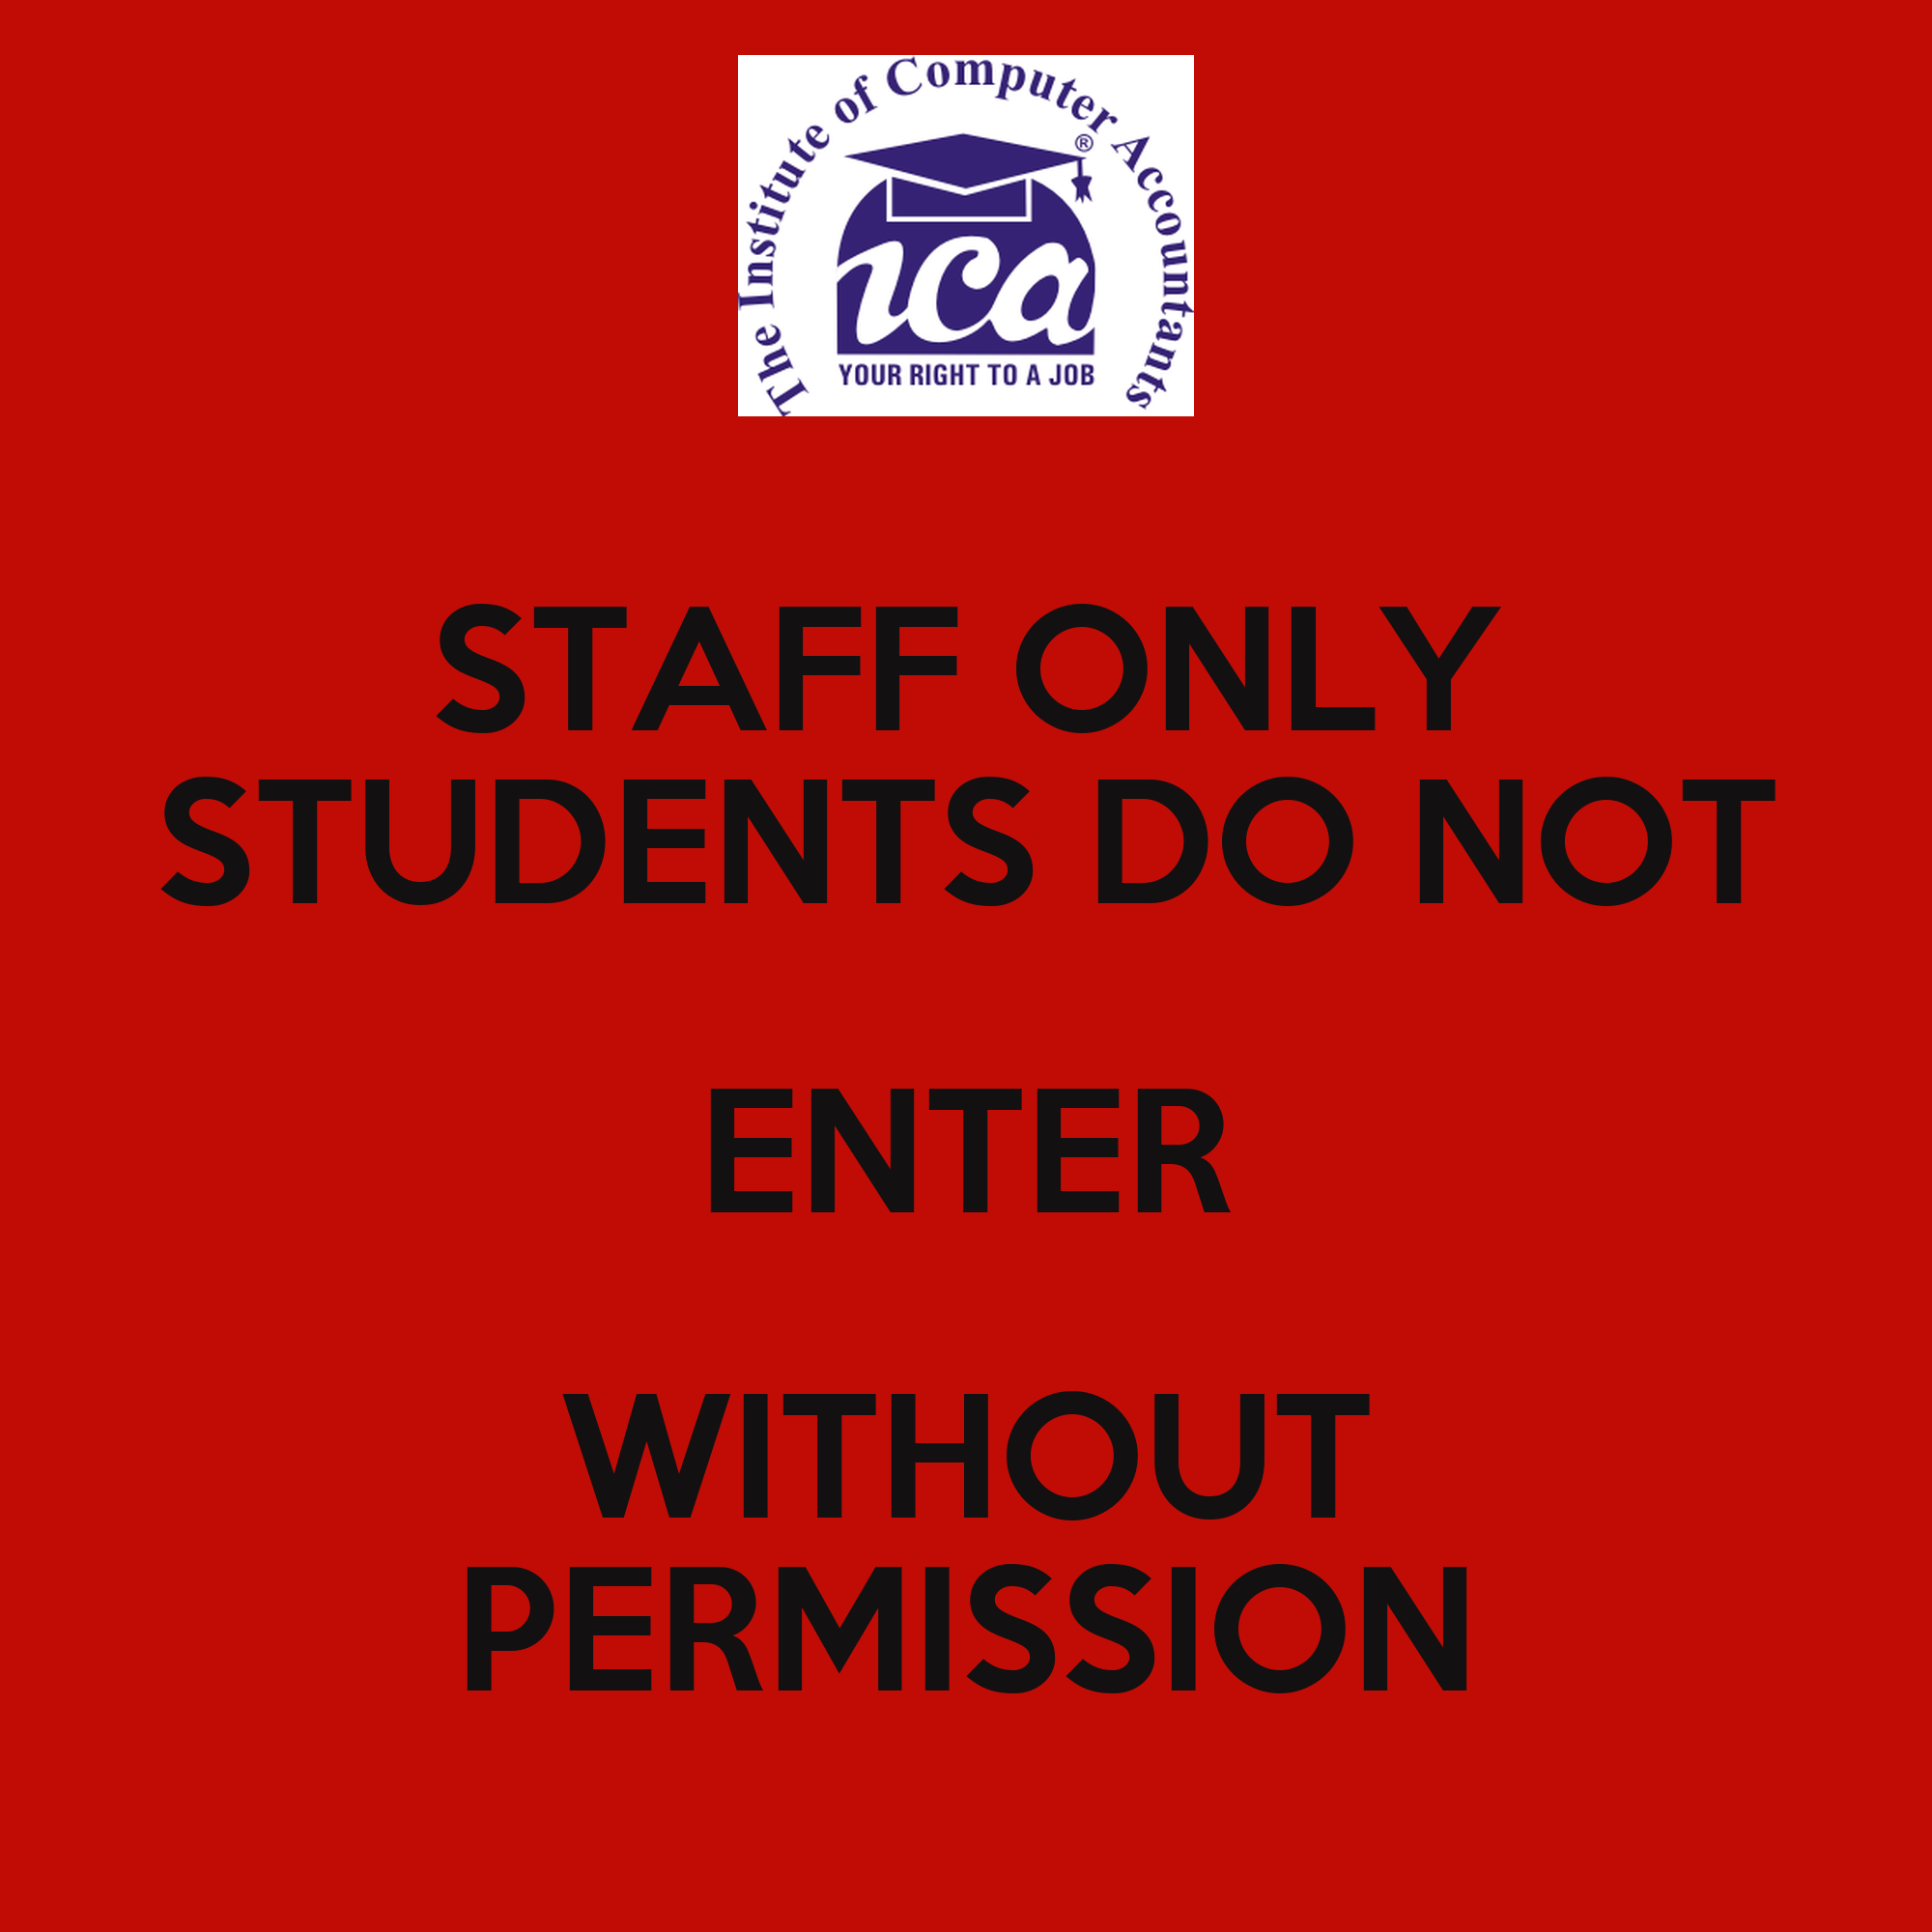 STAFF ONLY STUDENTS DO NOT ENTER WITHOUT PERMISSION - KEEP ...